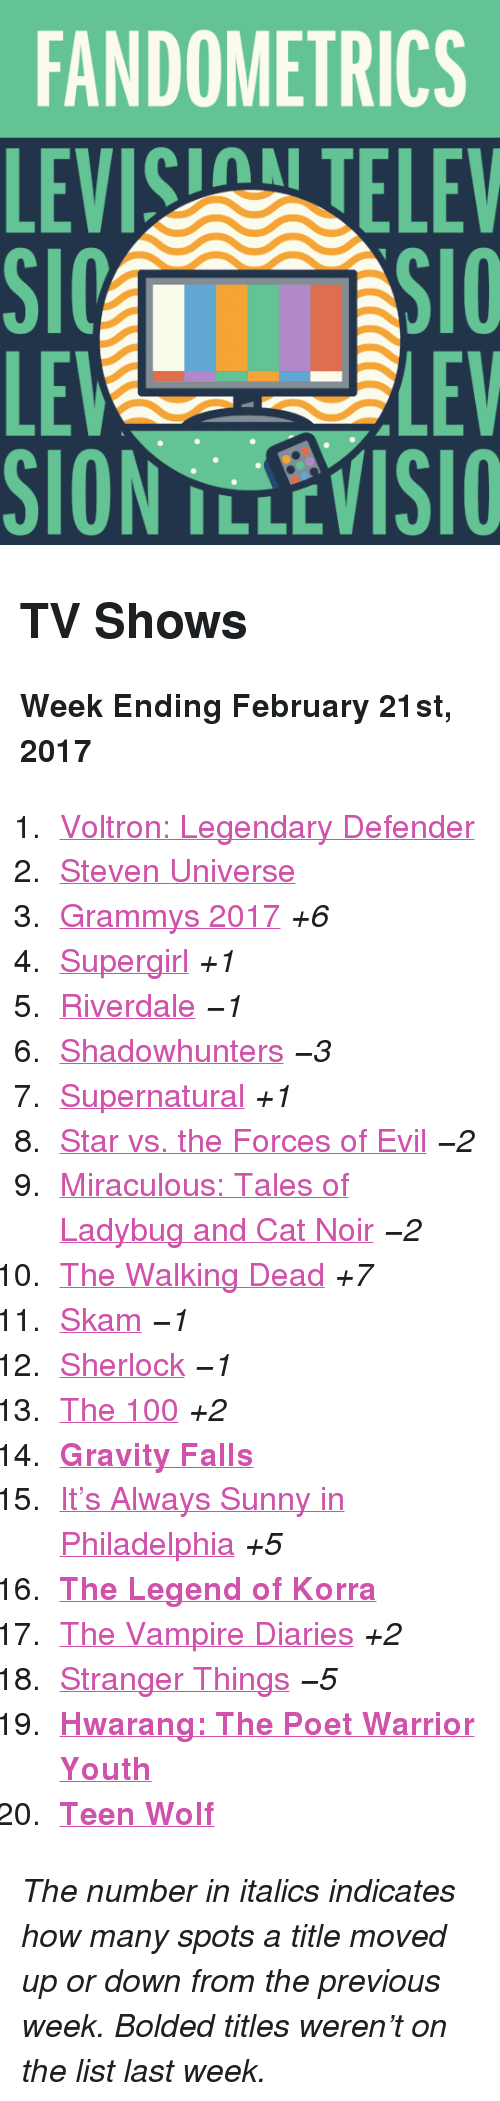 """Always Sunny in Philadelphia: FANDOMETRICS  LEVIS TELEV  LE  SION TLLEVISIO  LEV <h2>TV Shows</h2><p><b>Week Ending February 21st, 2017</b></p><ol><li><a href=""""http://www.tumblr.com/search/voltron"""">Voltron: Legendary Defender</a></li>  <li><a href=""""http://www.tumblr.com/search/steven%20universe"""">Steven Universe</a></li>  <li><a href=""""http://www.tumblr.com/search/grammys"""">Grammys 2017</a><i>+6</i></li>  <li><a href=""""http://www.tumblr.com/search/supergirl"""">Supergirl</a><i>+1</i></li>  <li><a href=""""http://www.tumblr.com/search/riverdale"""">Riverdale</a><i><i>−1</i></i></li>  <li><a href=""""http://www.tumblr.com/search/shadowhunters"""">Shadowhunters</a><i><i>−3</i></i></li>  <li><a href=""""http://www.tumblr.com/search/supernatural"""">Supernatural</a><i>+1</i></li>  <li><a href=""""http://www.tumblr.com/search/star%20vs%20the%20forces%20of%20evil"""">Star vs. the Forces of Evil</a><i><i>−2</i></i></li>  <li><a href=""""http://www.tumblr.com/search/miraculous%20ladybug"""">Miraculous: Tales of Ladybug and Cat Noir</a><i><i>−2</i></i></li>  <li><a href=""""http://www.tumblr.com/search/the%20walking%20dead"""">The Walking Dead</a><i>+7</i></li>  <li><a href=""""http://www.tumblr.com/search/skam"""">Skam</a><i><i>−1</i></i></li>  <li><a href=""""http://www.tumblr.com/search/sherlock"""">Sherlock</a><i><i>−1</i></i></li>  <li><a href=""""http://www.tumblr.com/search/the%20100"""">The 100</a><i>+2</i></li>  <li><a href=""""http://www.tumblr.com/search/gravity%20falls""""><b>Gravity Falls</b></a></li>  <li><a href=""""http://www.tumblr.com/search/it's%20always%20sunny%20in%20philadelphia"""">It&rsquo;s Always Sunny in Philadelphia</a><i>+5</i></li>  <li><a href=""""http://www.tumblr.com/search/legend%20of%20korra""""><b>The Legend of Korra</b></a></li>  <li><a href=""""http://www.tumblr.com/search/the%20vampire%20diaries"""">The Vampire Diaries</a><i>+2</i></li>  <li><a href=""""http://www.tumblr.com/search/stranger%20things"""">Stranger Things</a><i><i>−5</i></i></li>  <li><a href=""""http://www.tumblr.com/search/hwarang""""><b>Hwarang: The Poet Warrior You"""